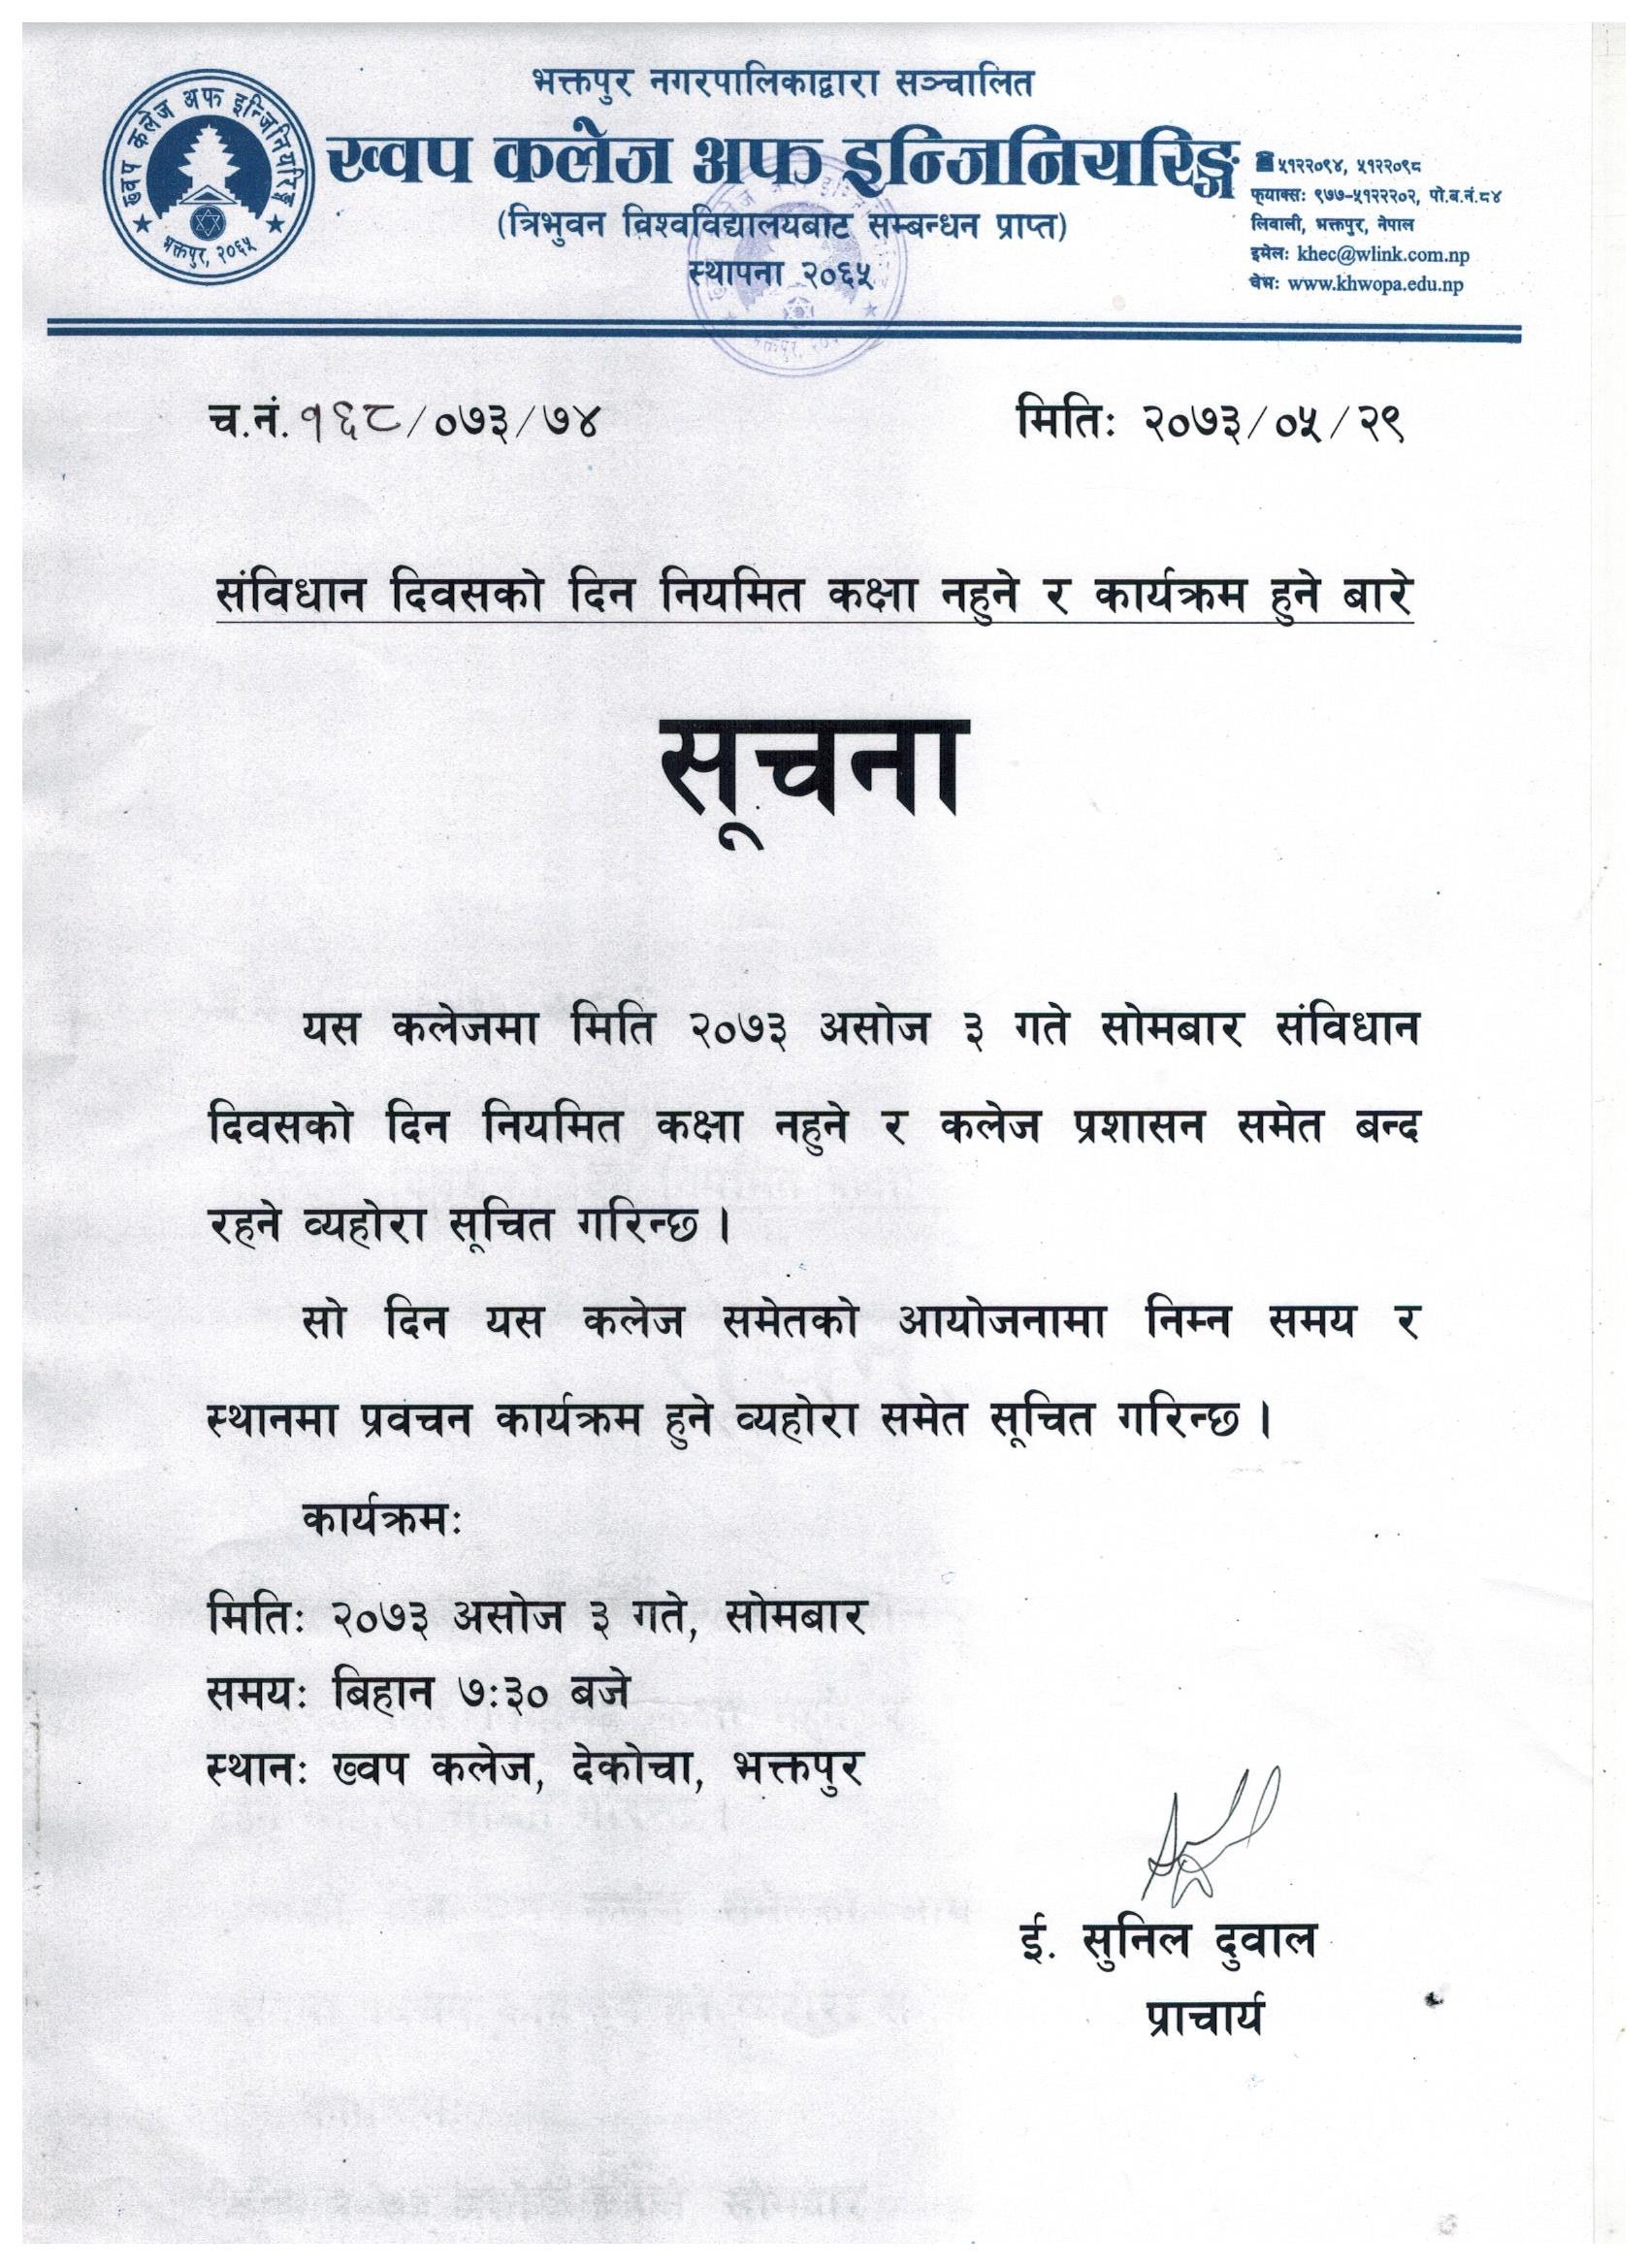 Regular Classes will be remained closed on the Constitution Day (Ashoj 3)